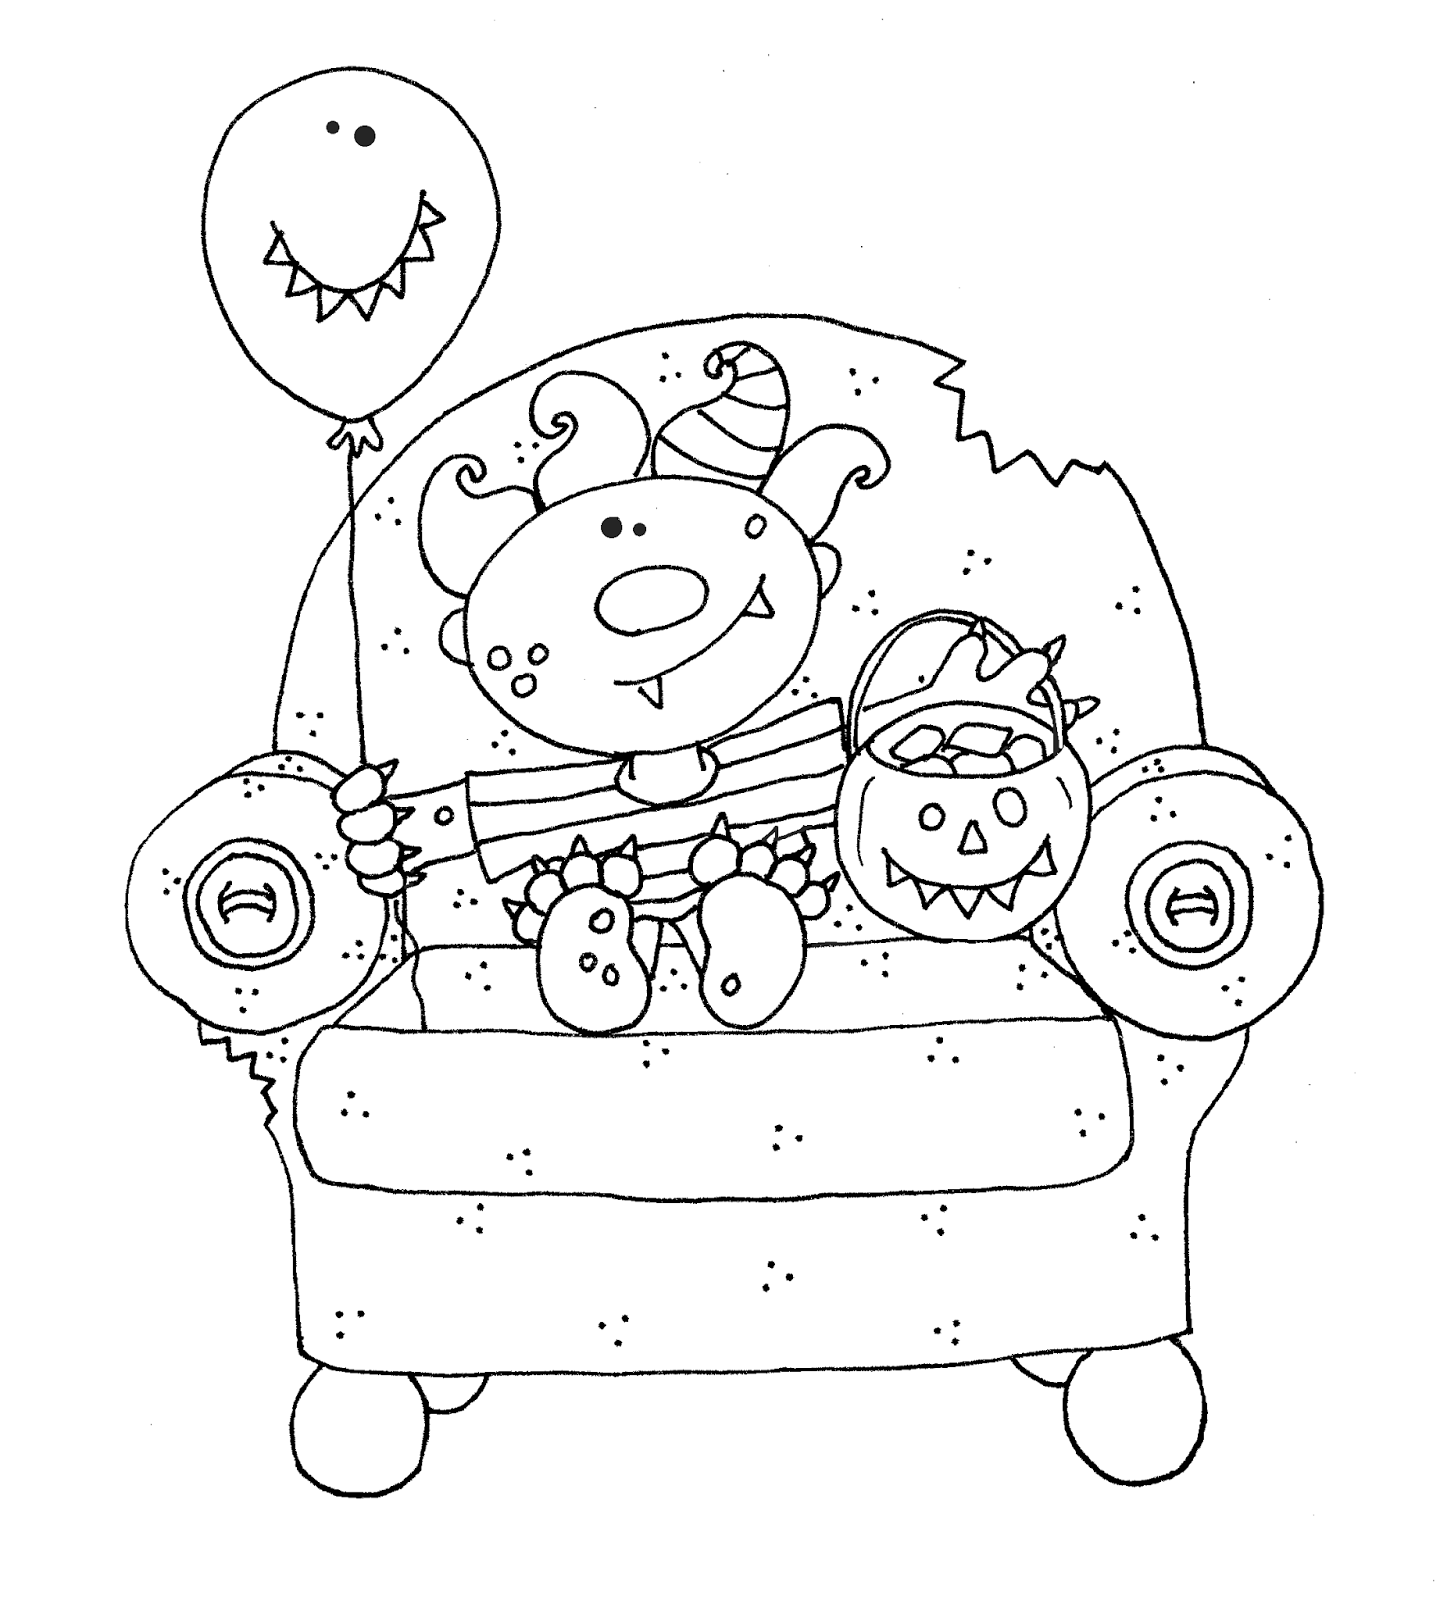 Free dearie dolls digi stamps monster halloween chair adults